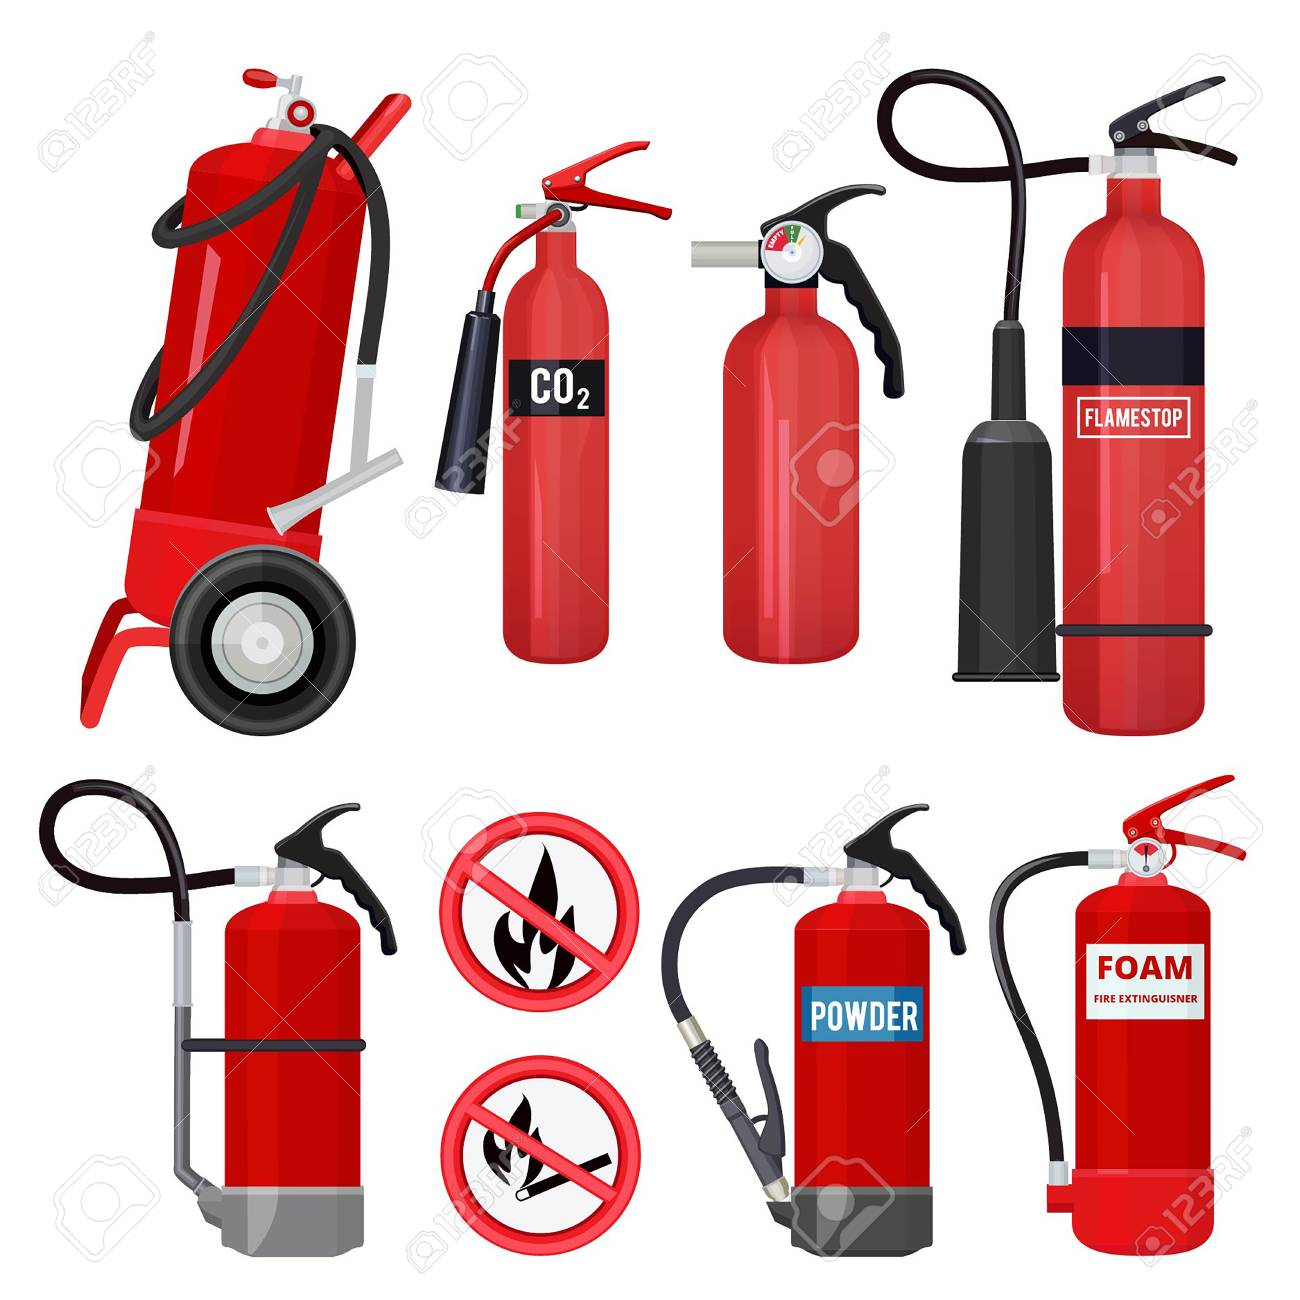 red fire extinguishers. firefighters tools for flame fighting